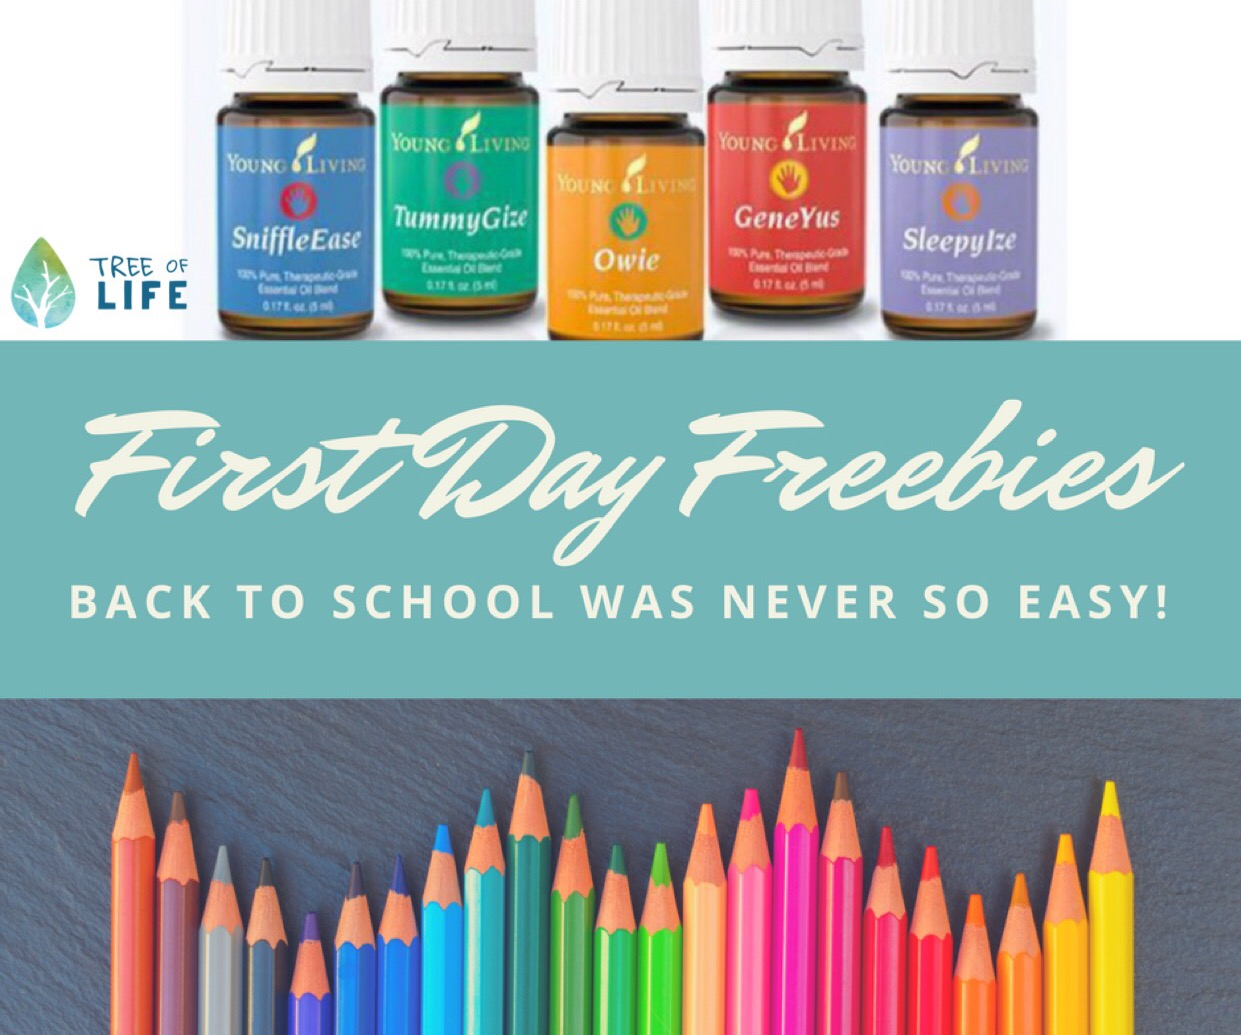 BacktoSchoolEssentialOils